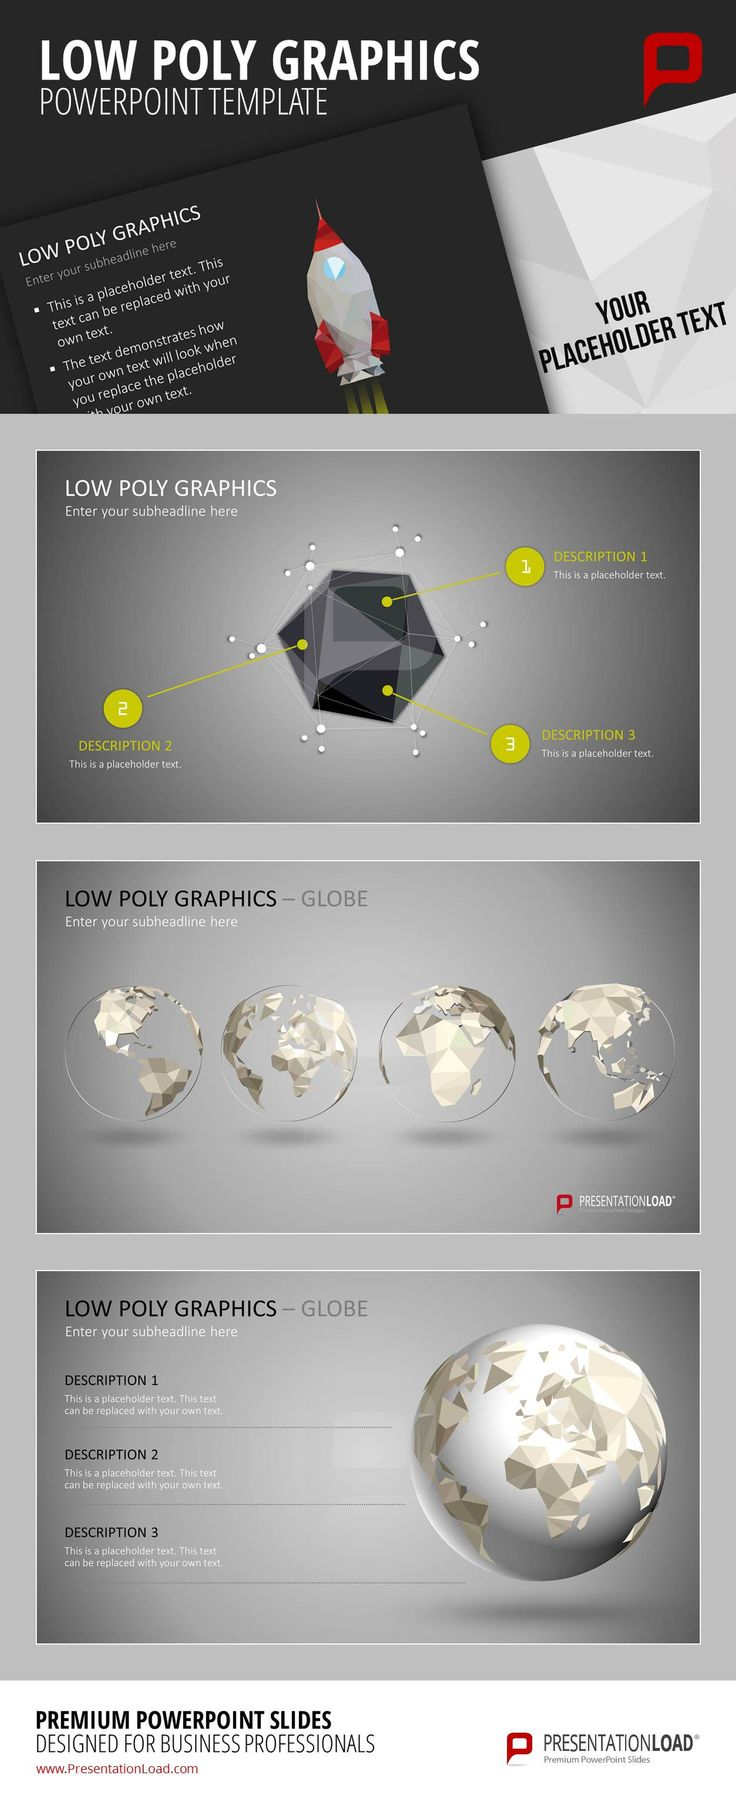 #LowPoly graphics are 3D computer graphics which are created by polygonal modeling. By using the technique of polygonal modeling, three vertices connected as one triangle become one simple polygon. We choose those stylish graphics for our new PowerPoint template Low Poly Graphics:  http://www.presentationload.de/low-poly-grafiken.html